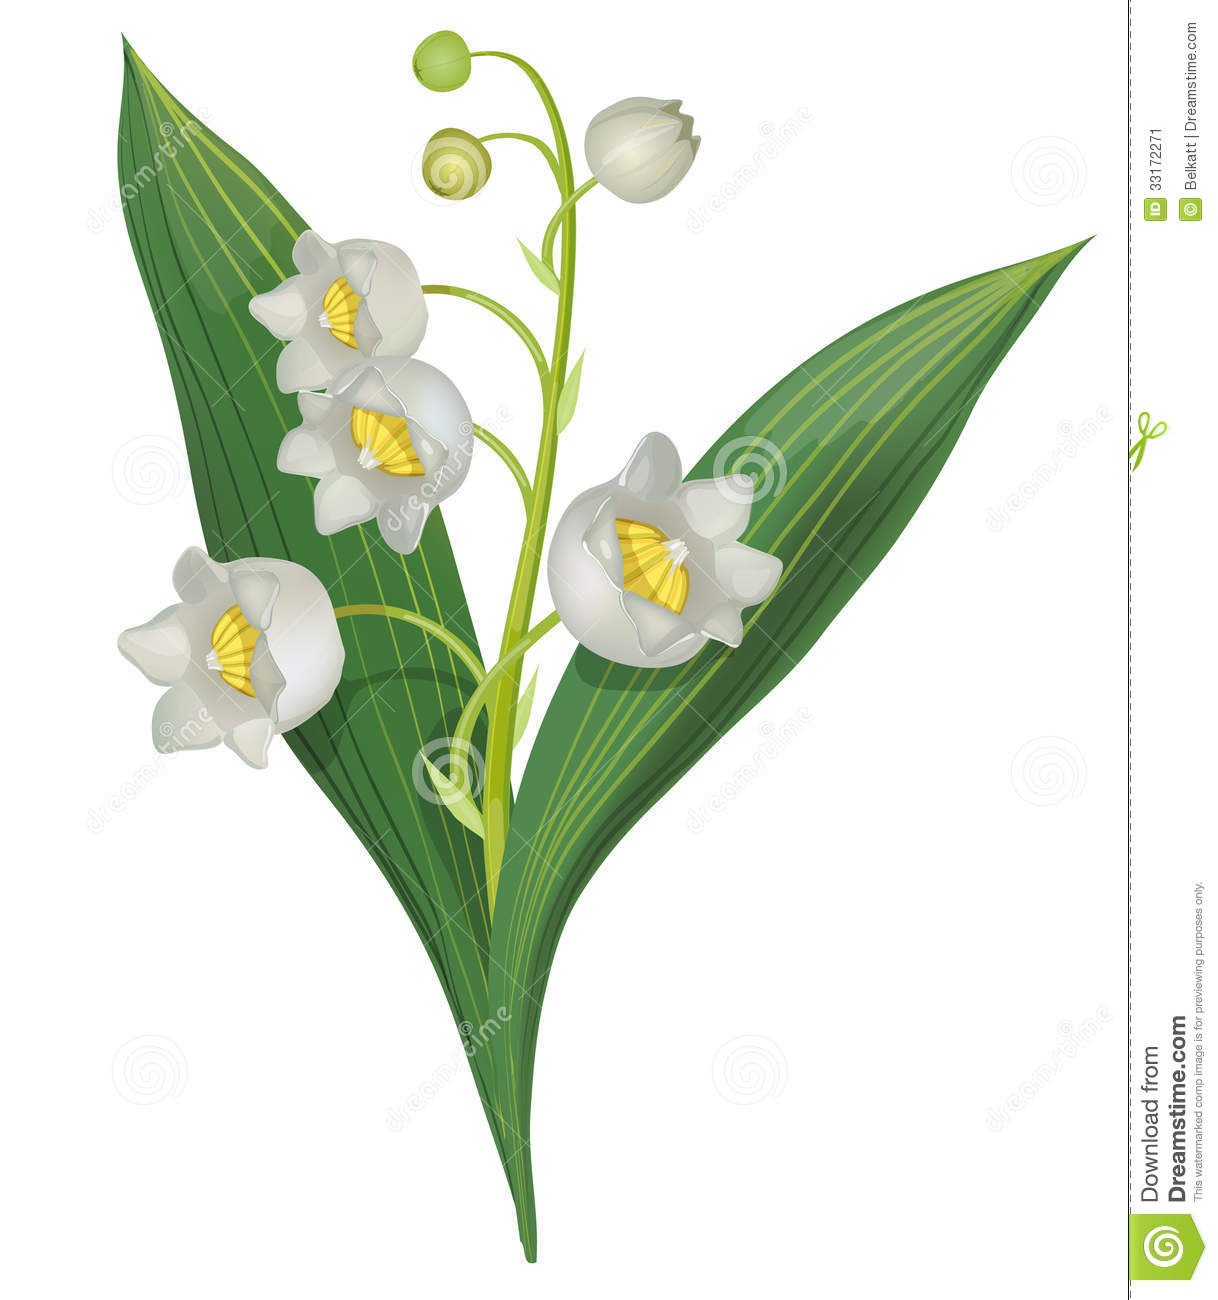 Lily of the valley stock vector. Illustration of flora ...